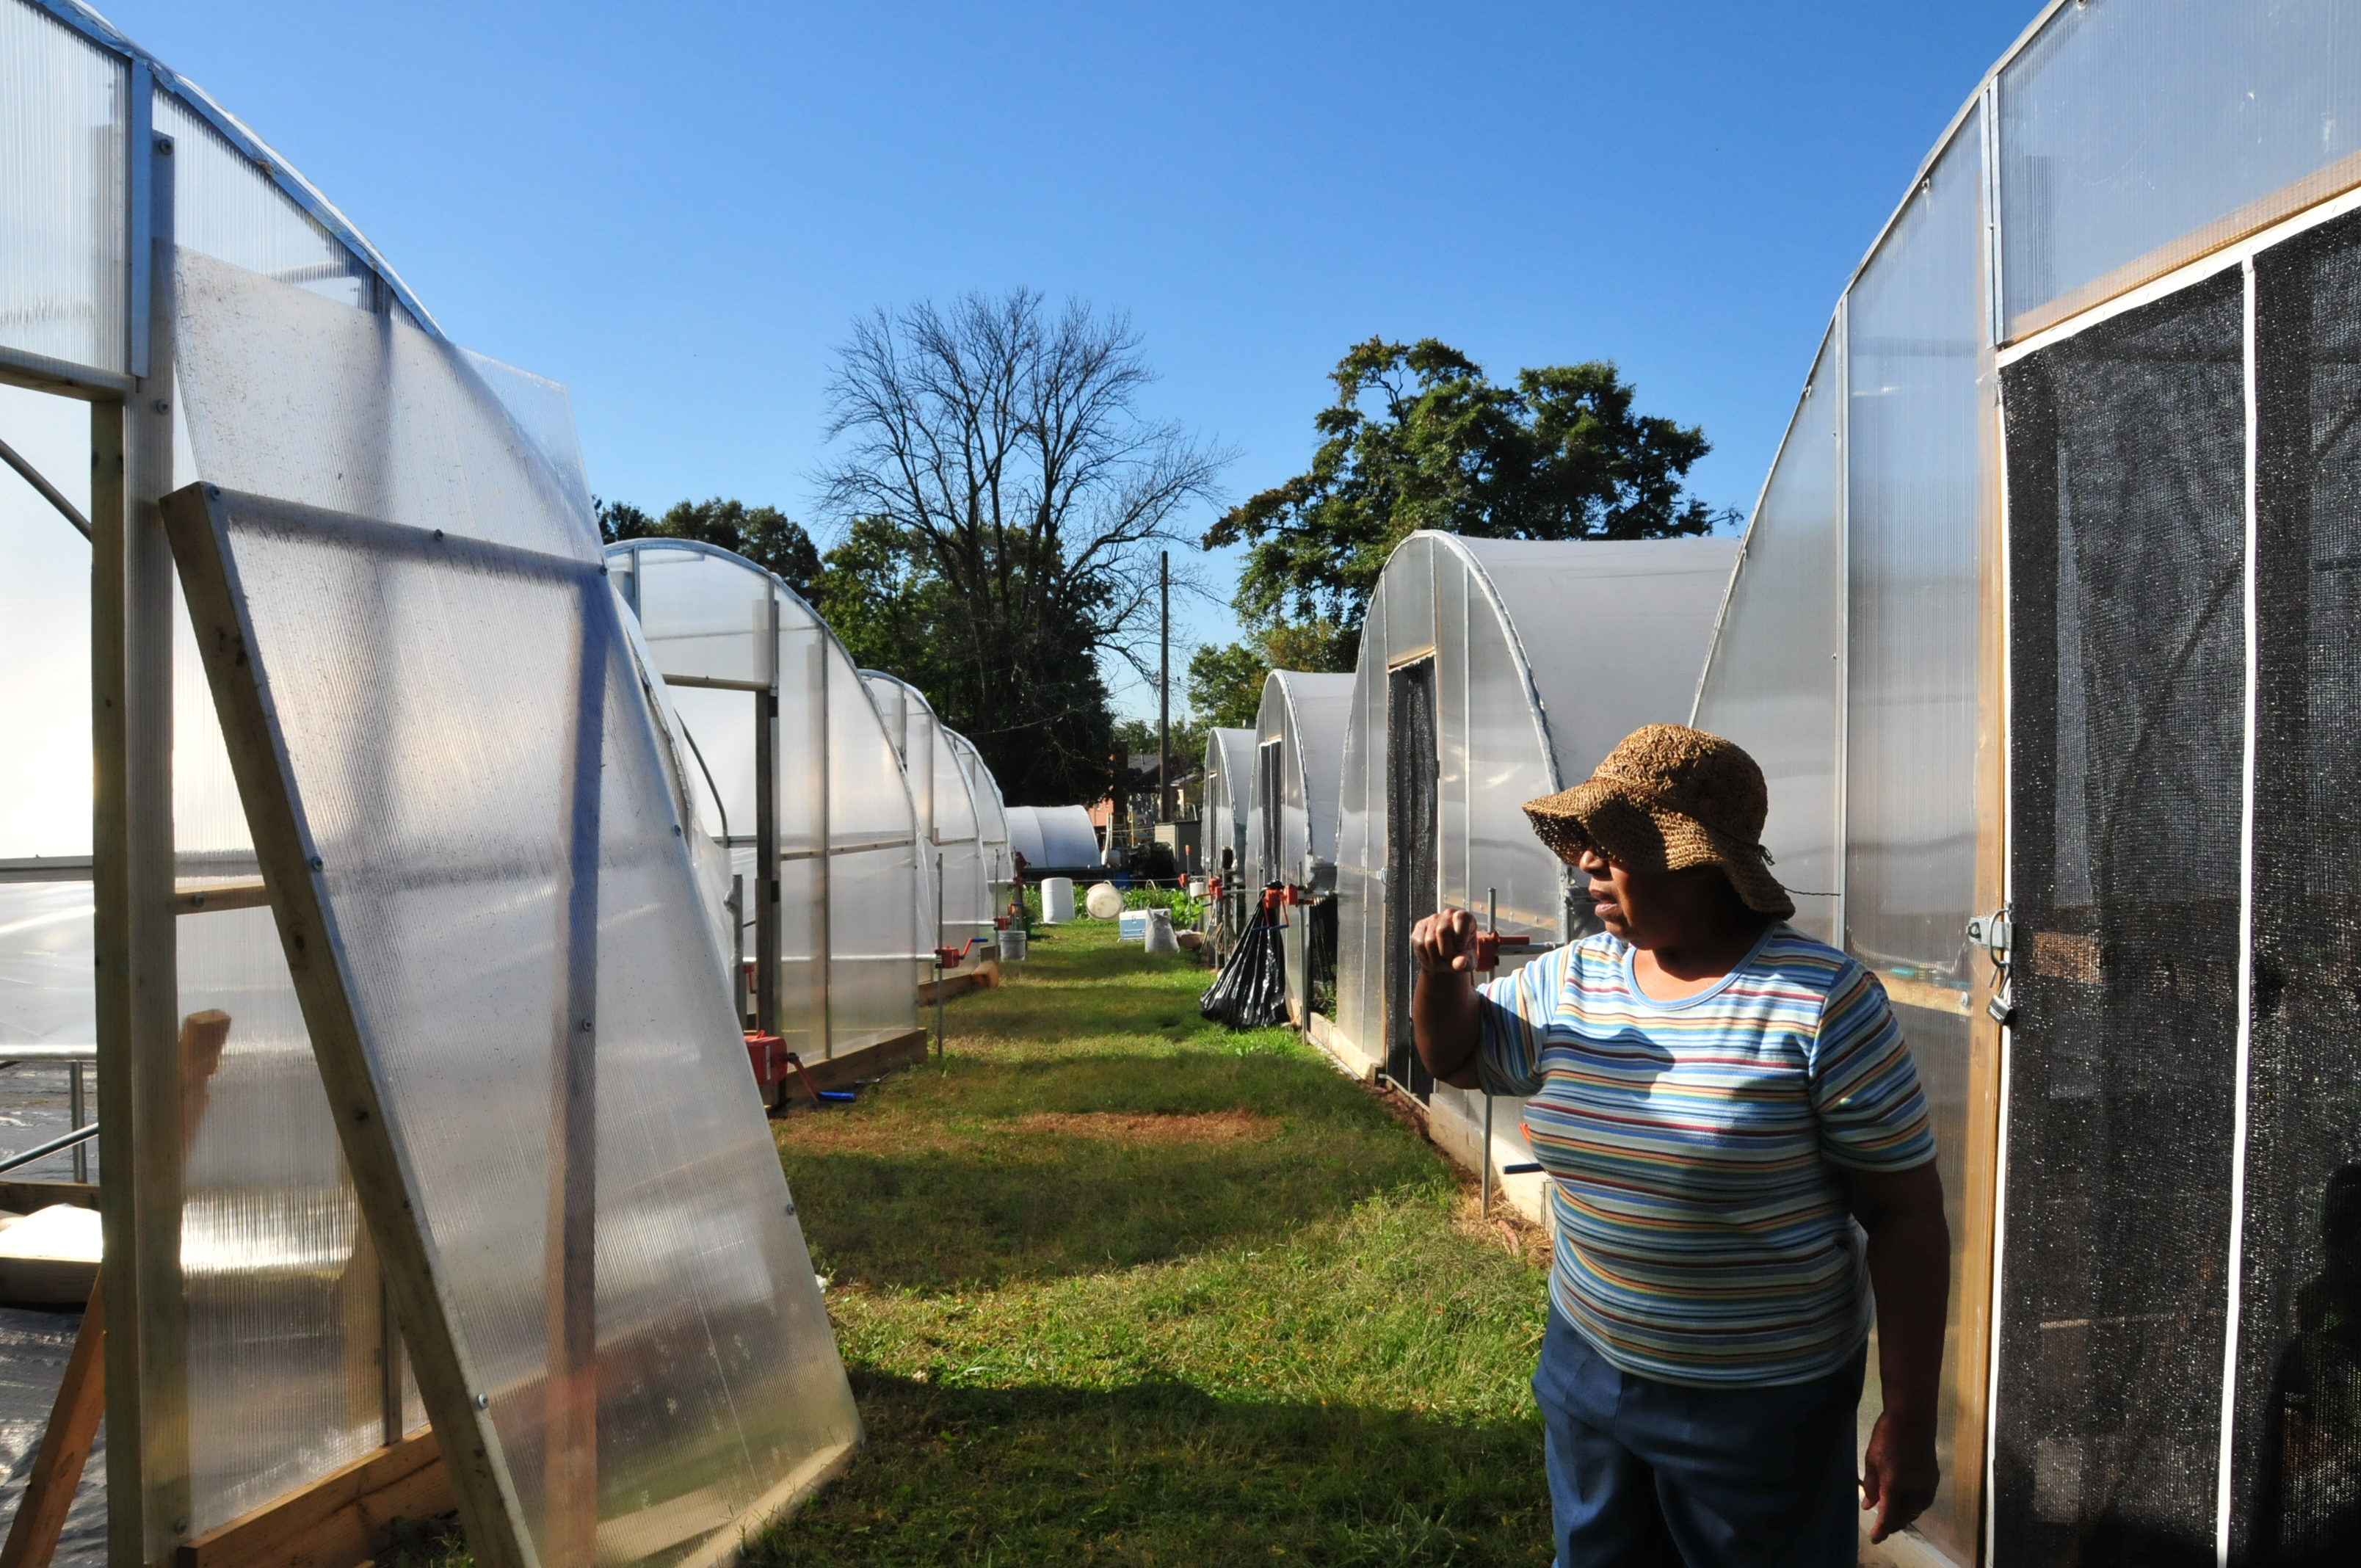 Lavette Blue discusses the high tunnels built on her Baltimore City farm, The Greener Garden.